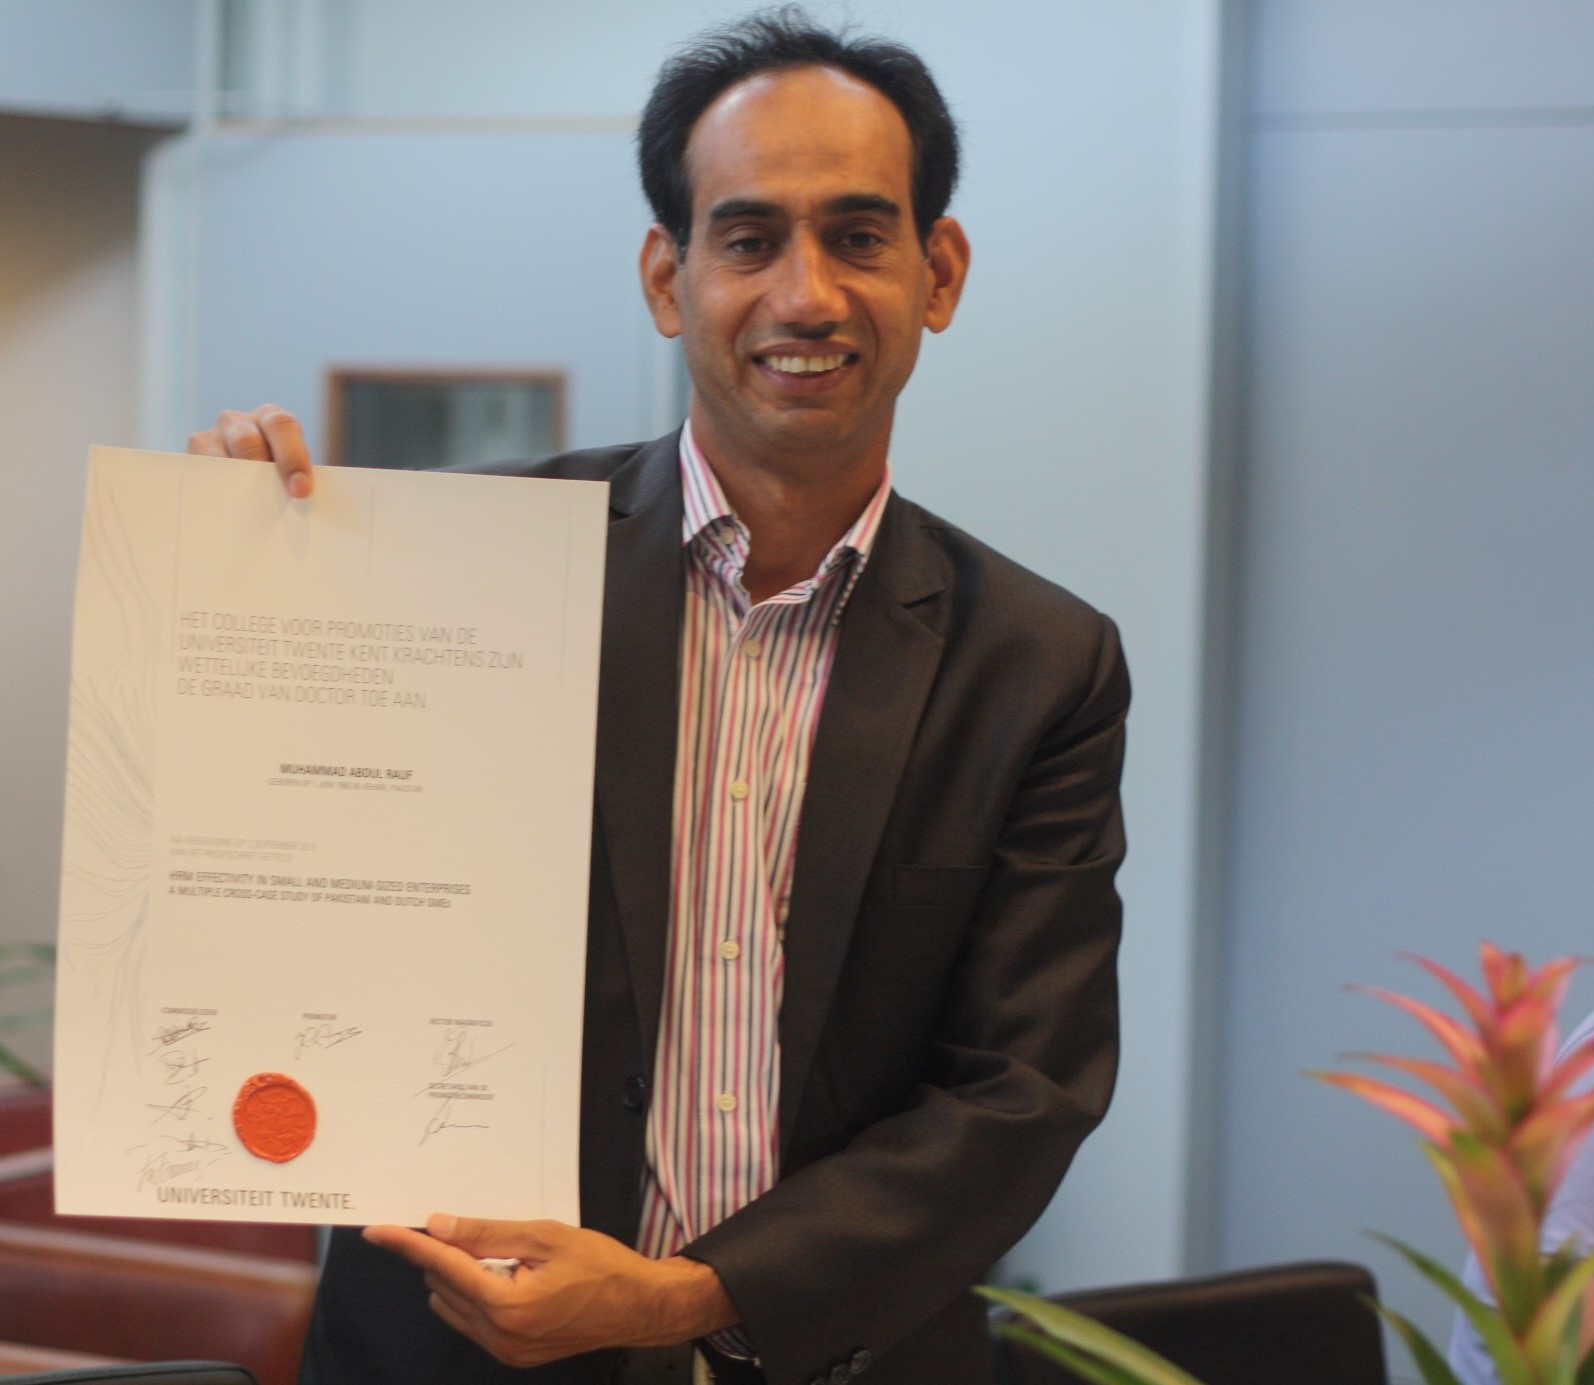 Wittenborg Senior Lecturer, Dr Abdul Rauf, Nominated for Prestigious HRM Award after PhD Dissertation